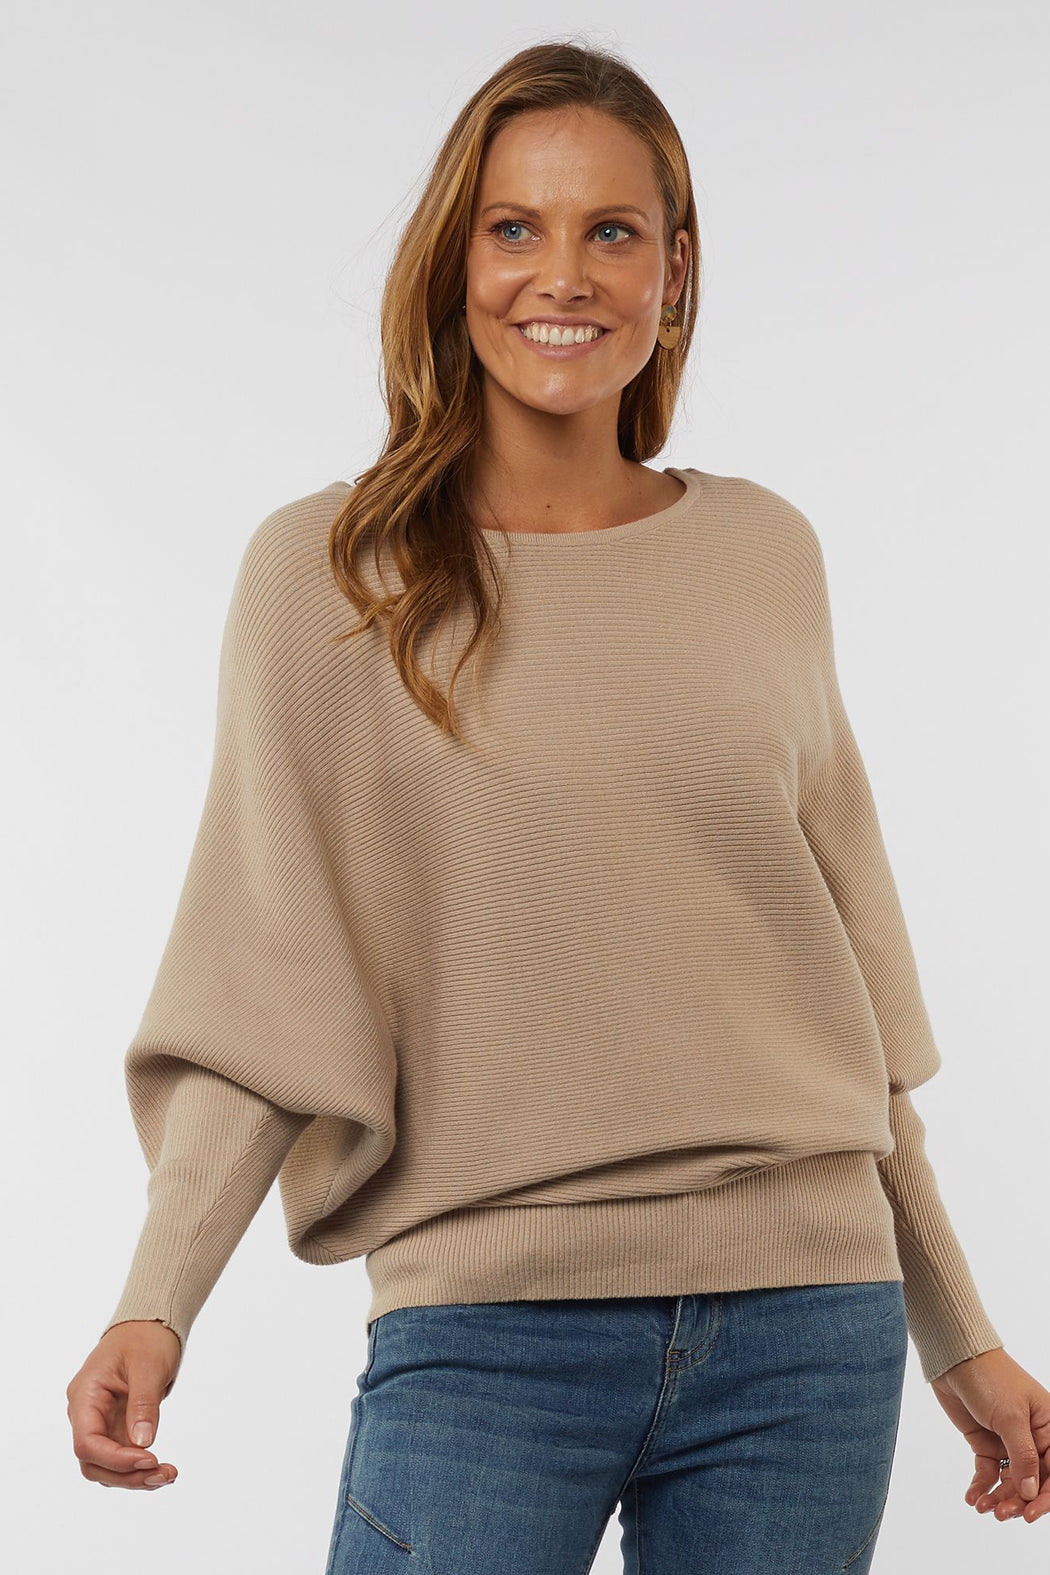 Foxwood Alinta Knit | Shop Foxwood at Wallace & Gibbs NZ